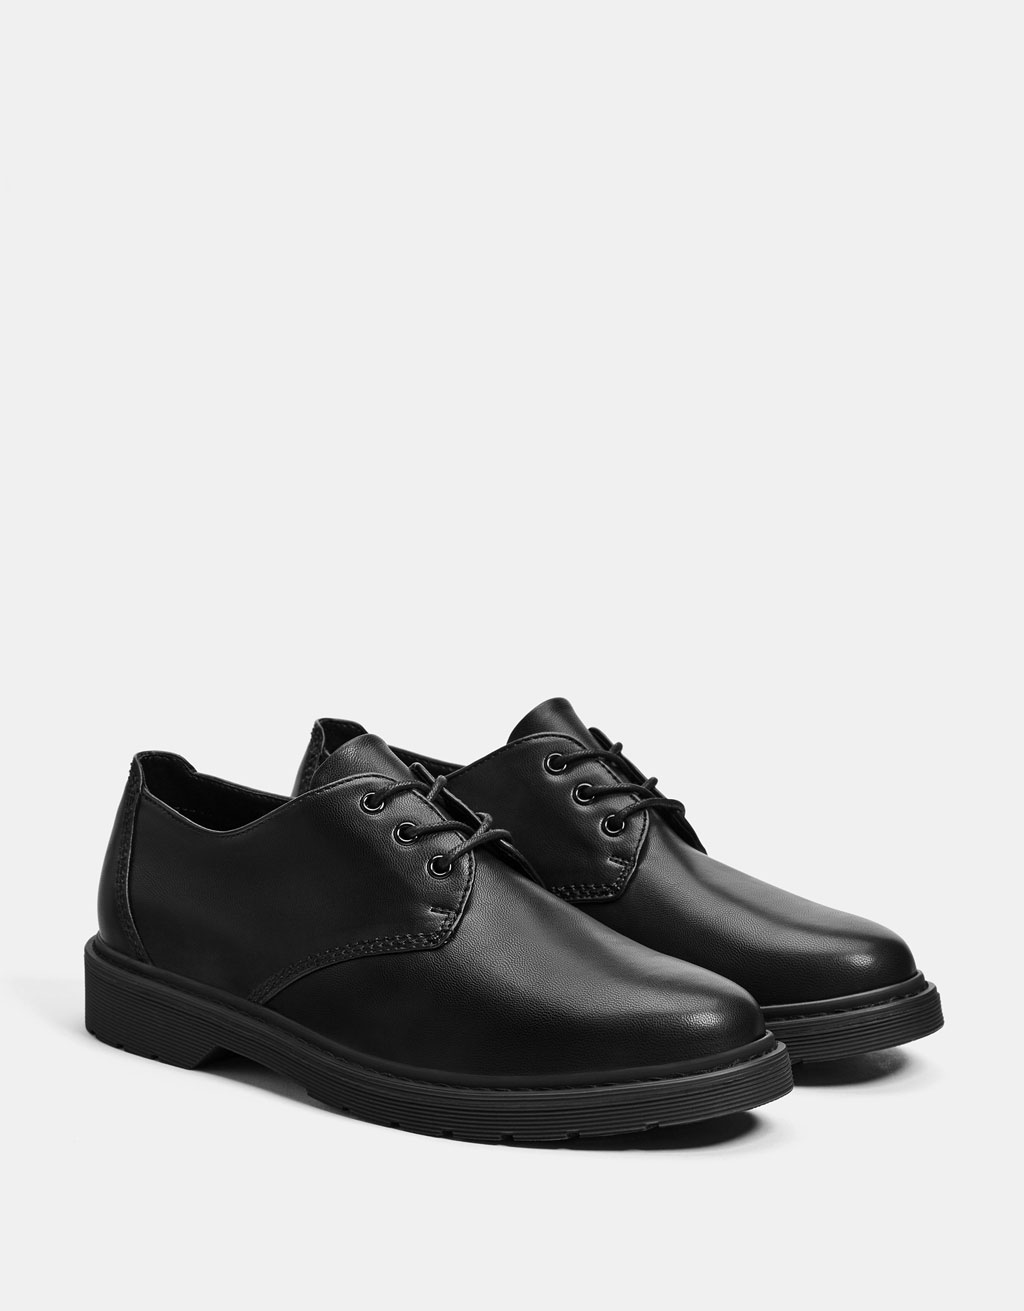 Men's smart black shoes